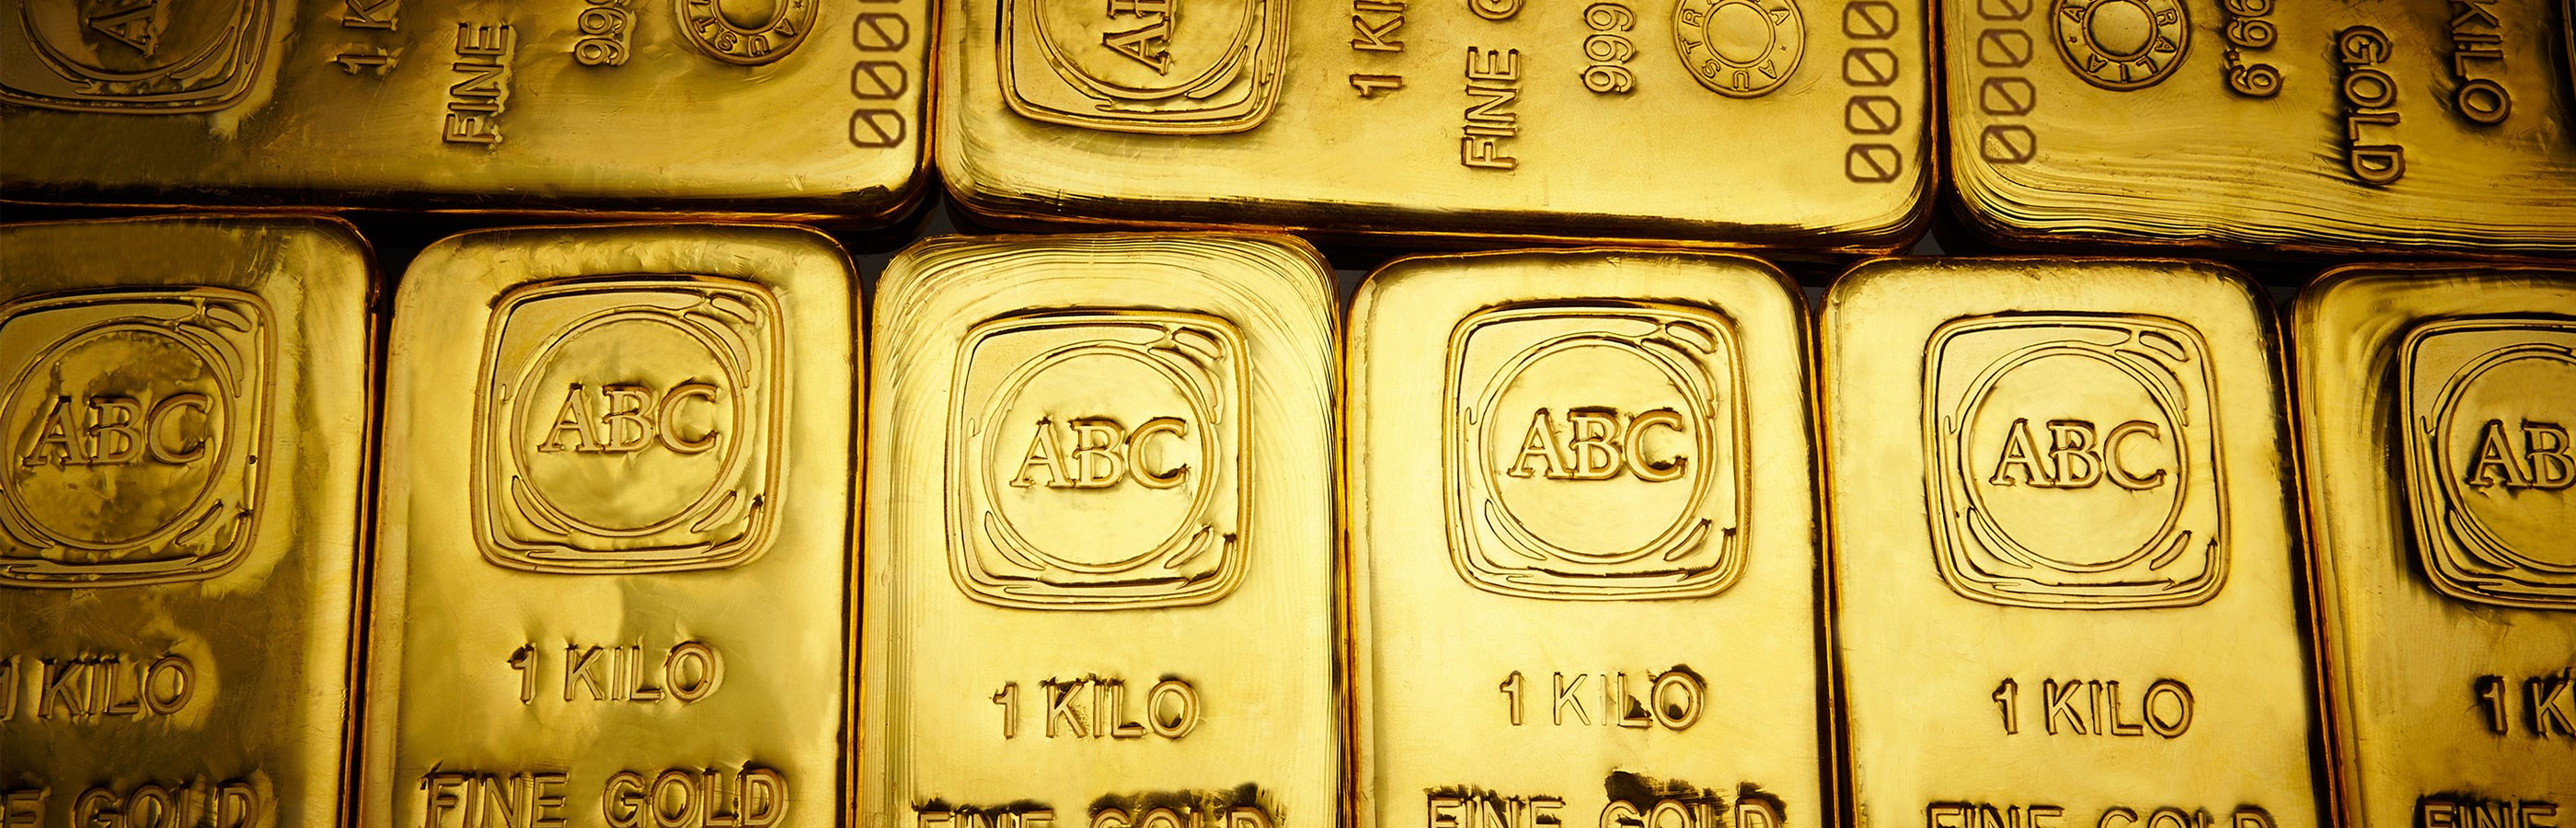 ABC Bullion 1 kilogram gold cast bars layed out next to one another